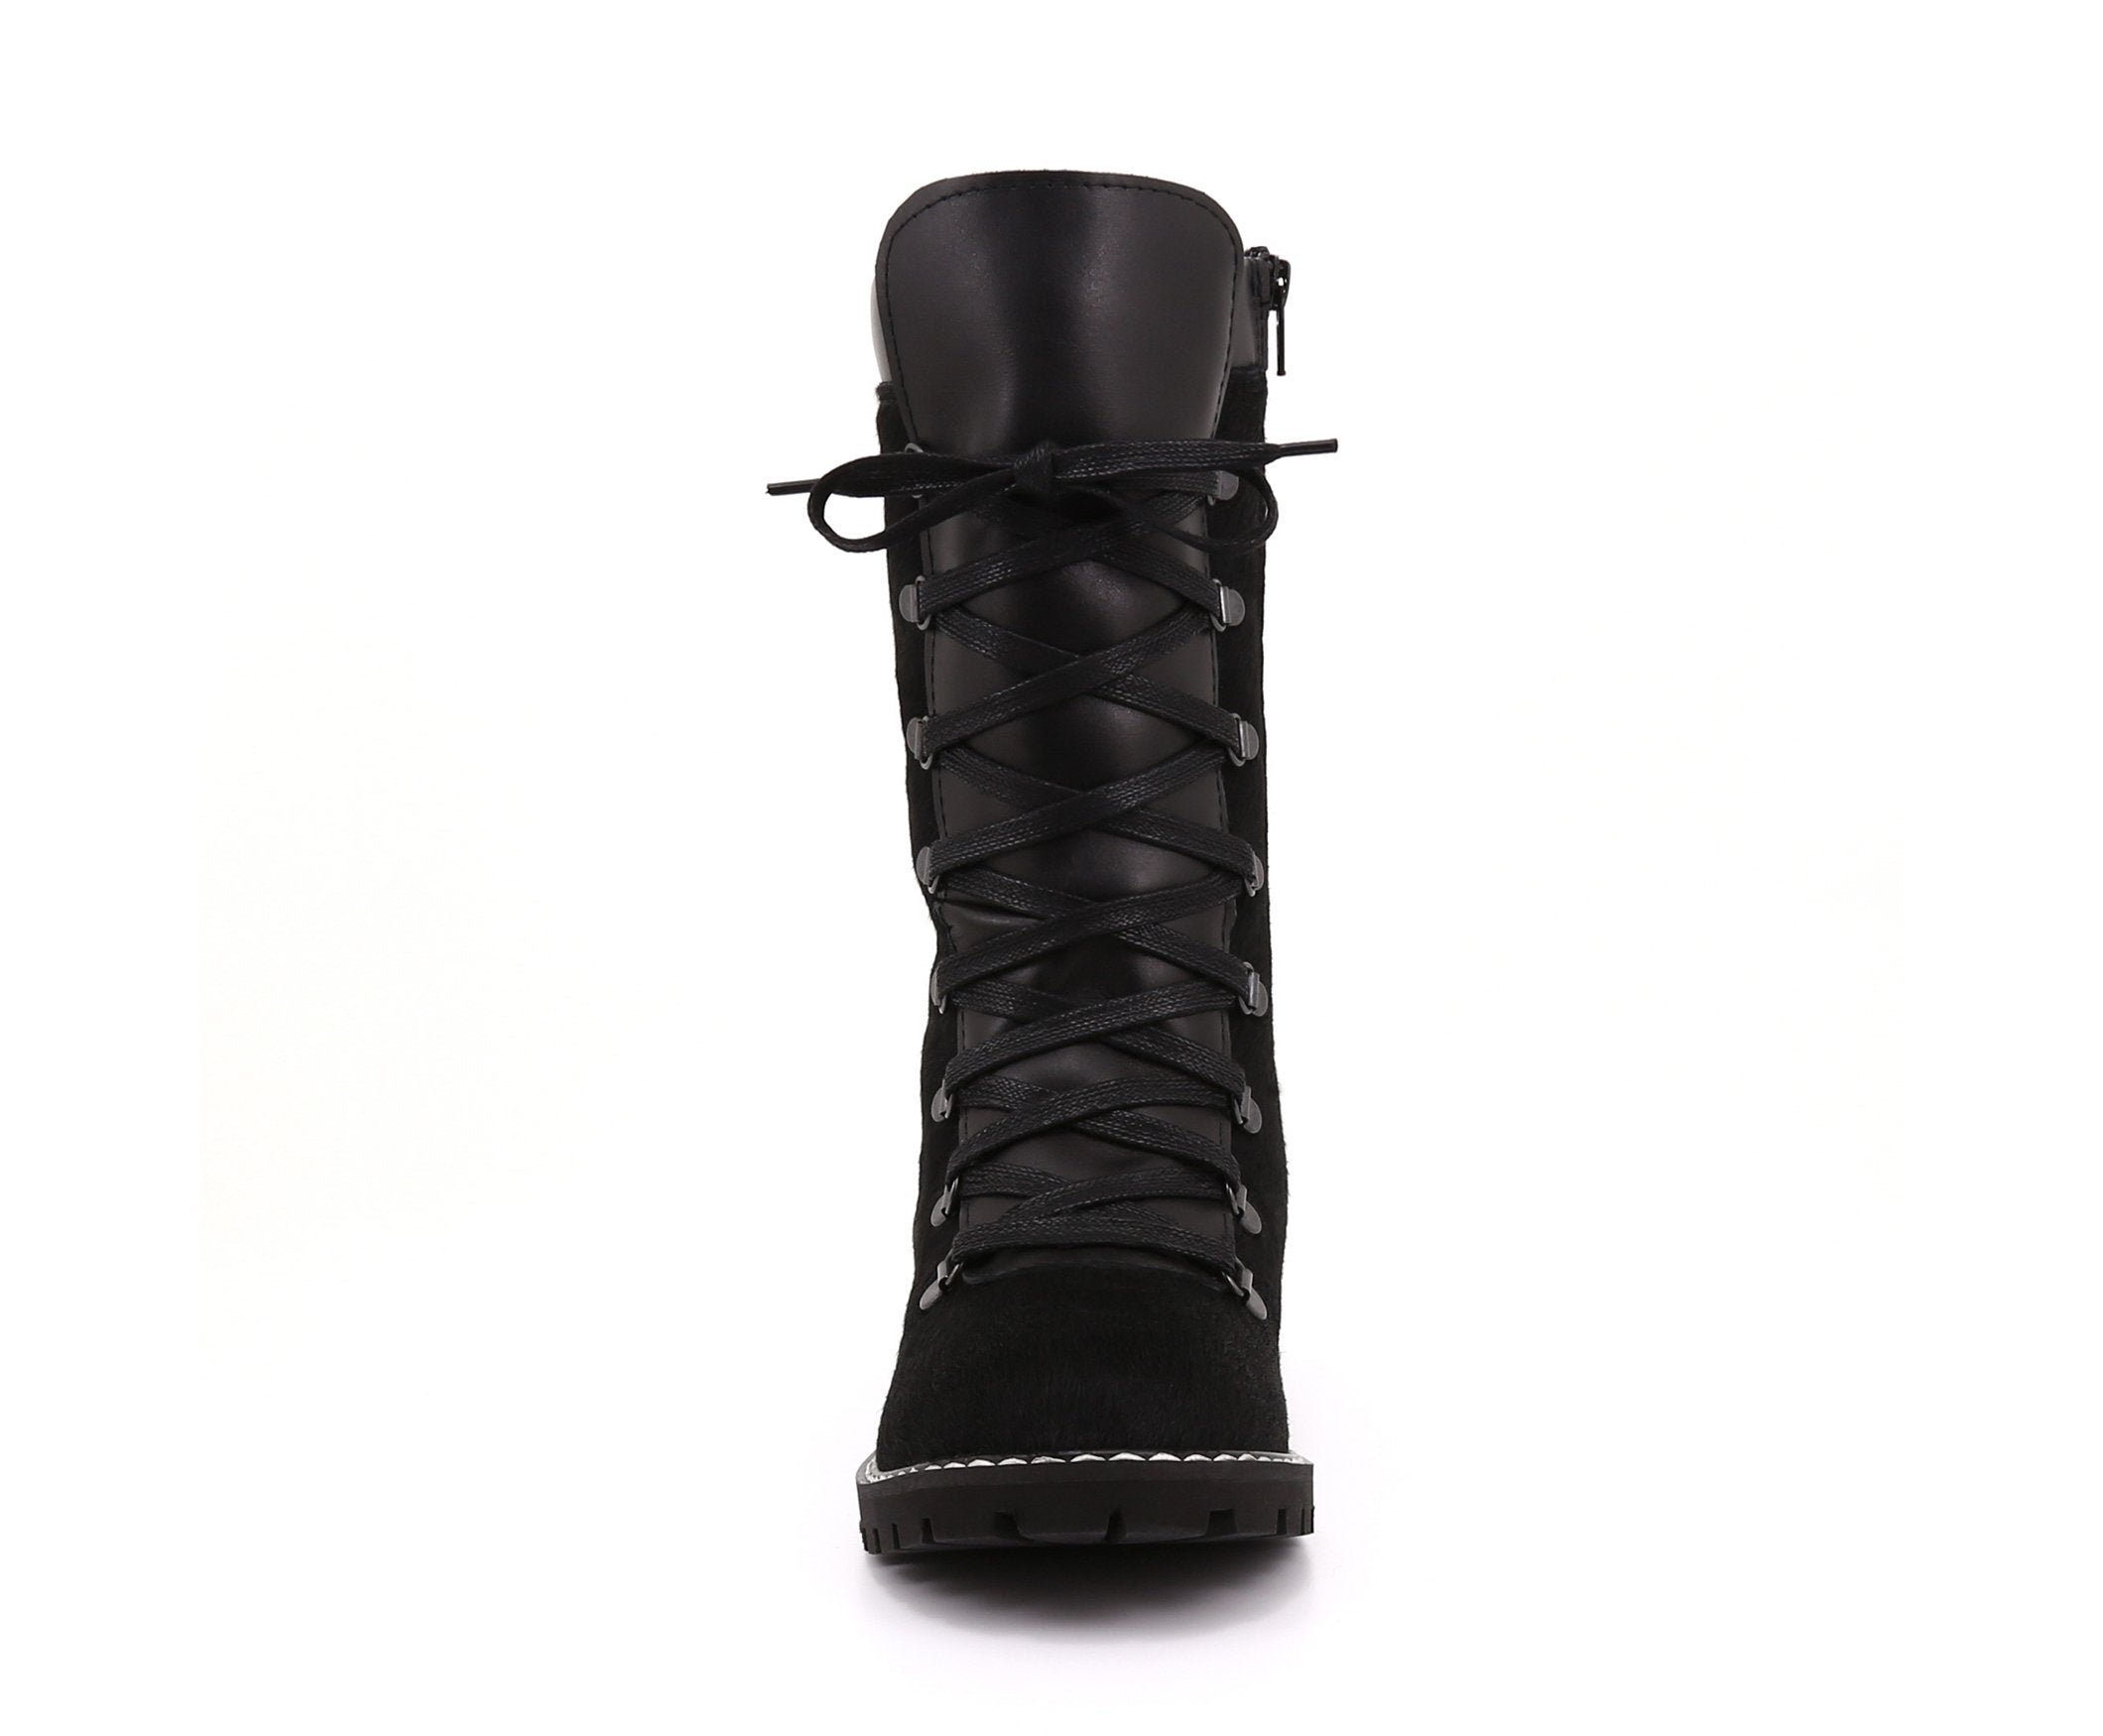 Brianna Grande Women's Winter Boot in Hairy Leather with Retractable Cleats - Alfred Cloutier Ltd. - Canada